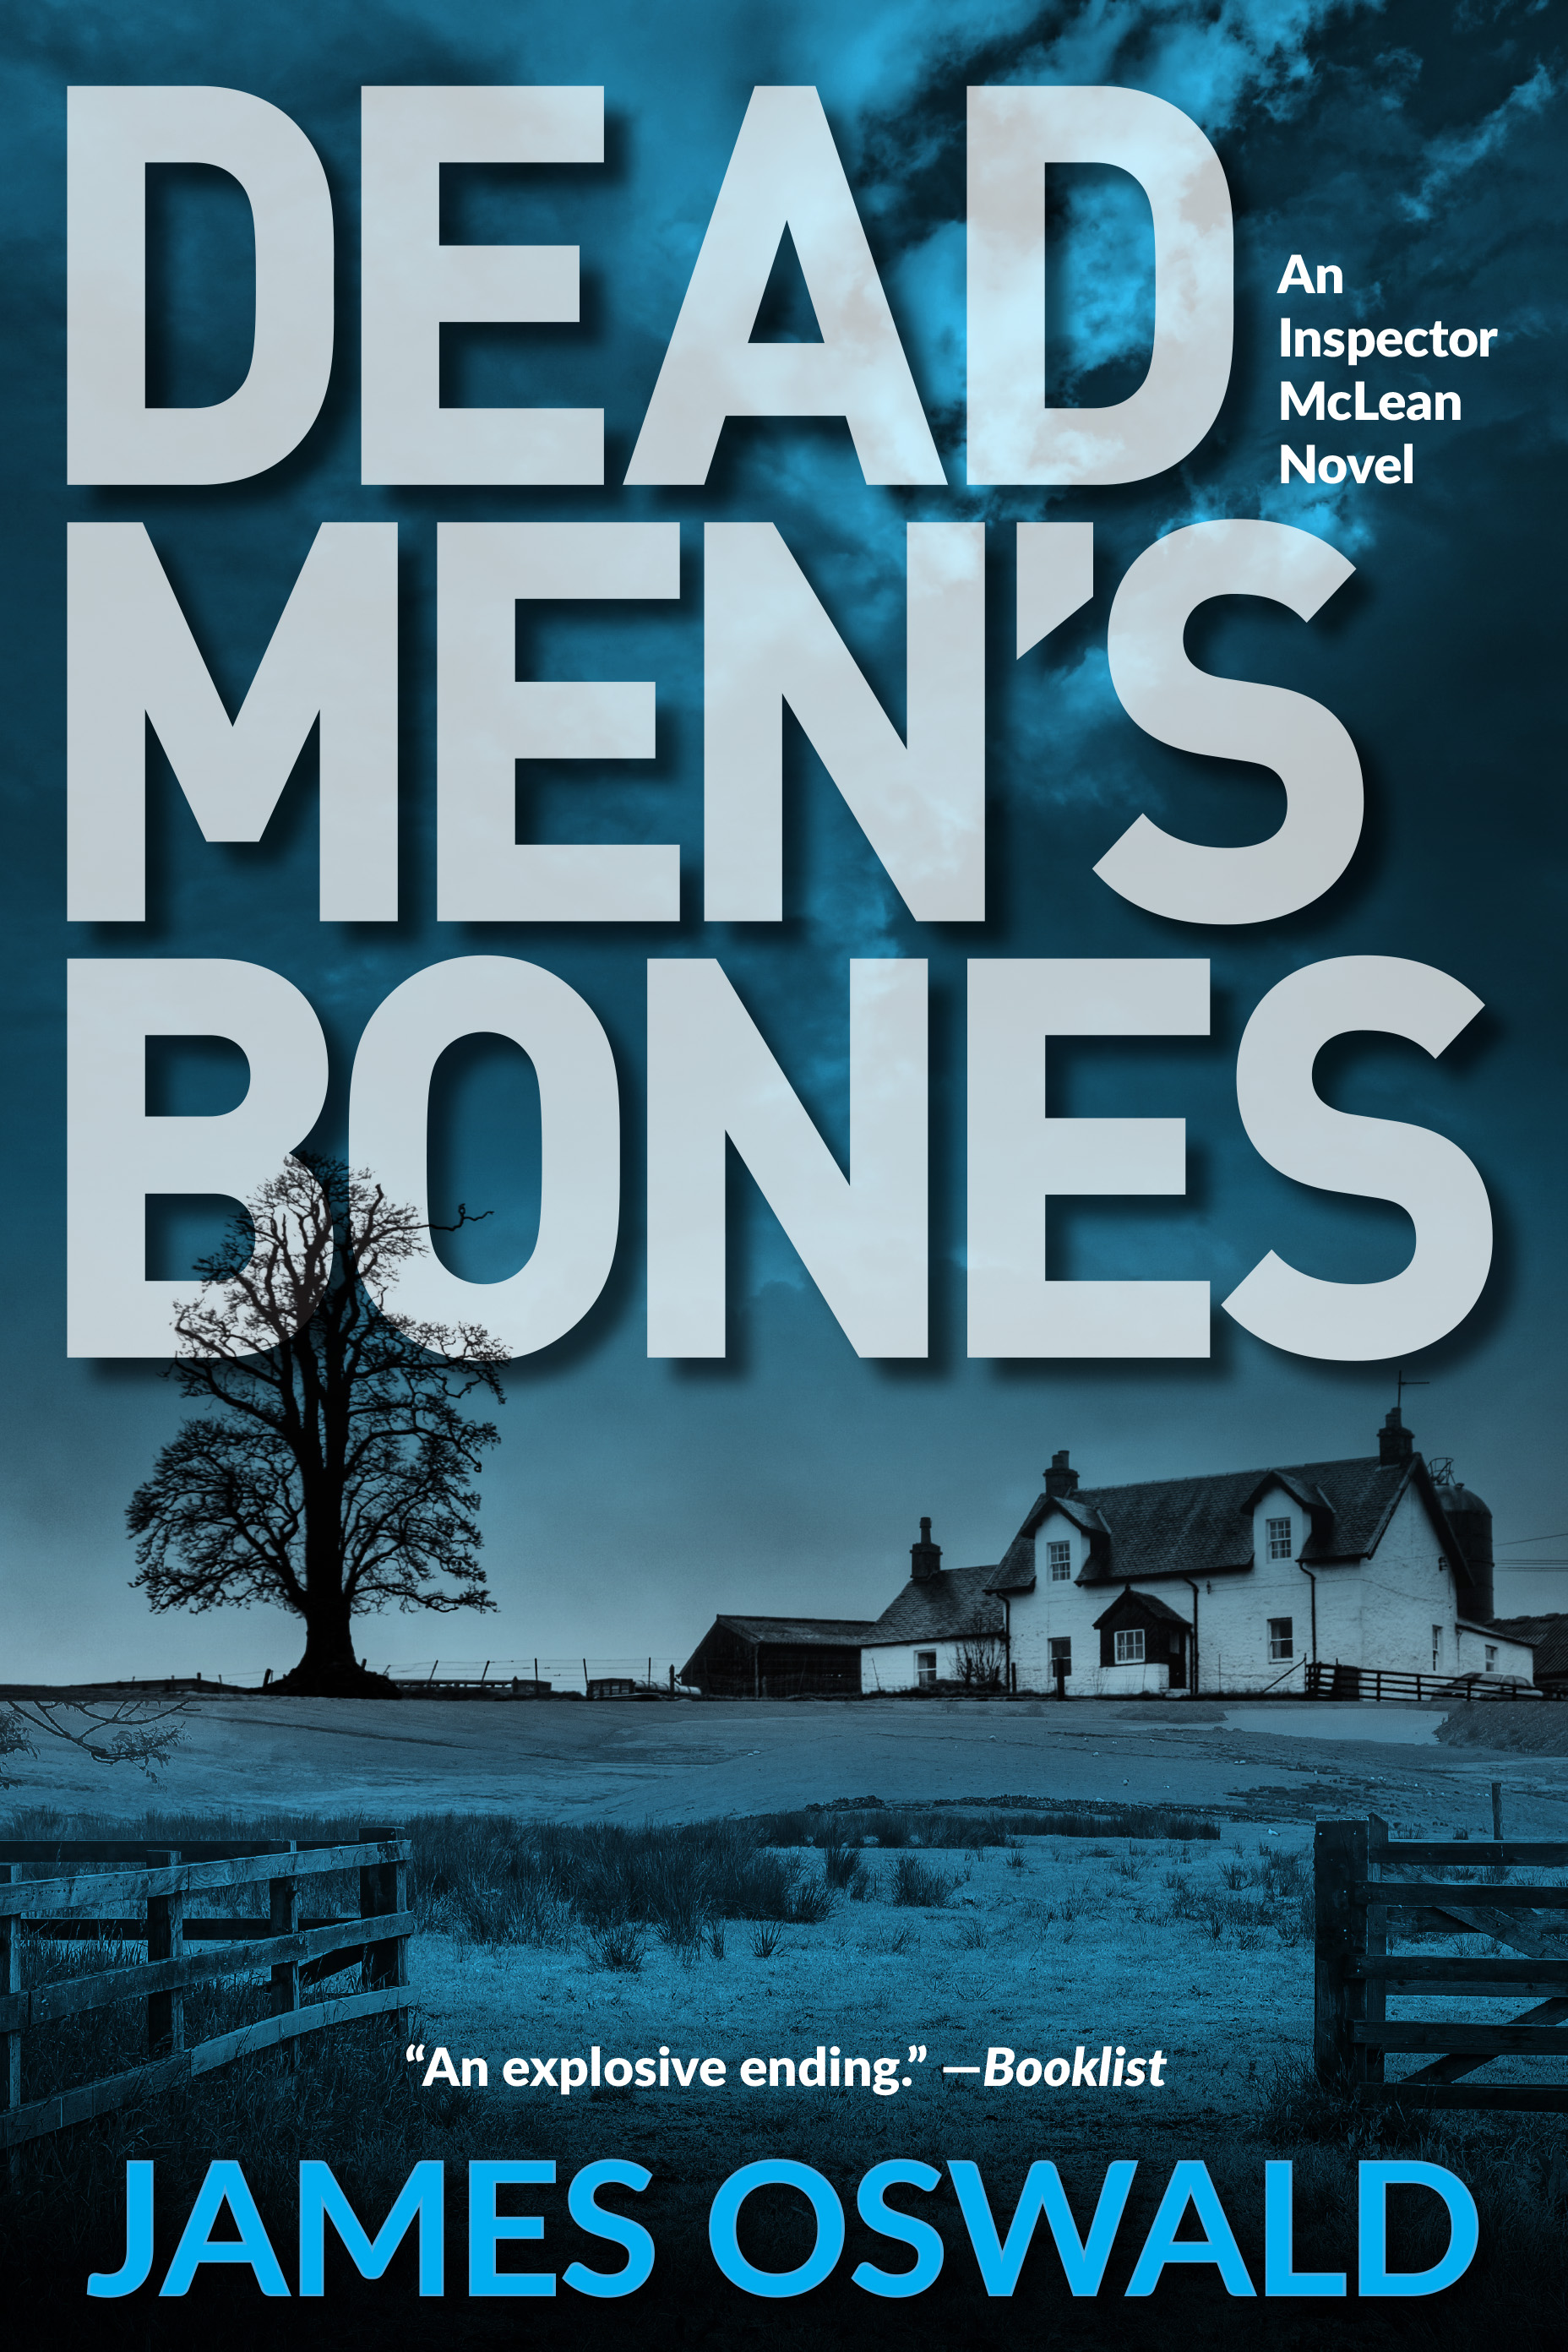 Dead Men's Bones: An Inspector McLean Novel